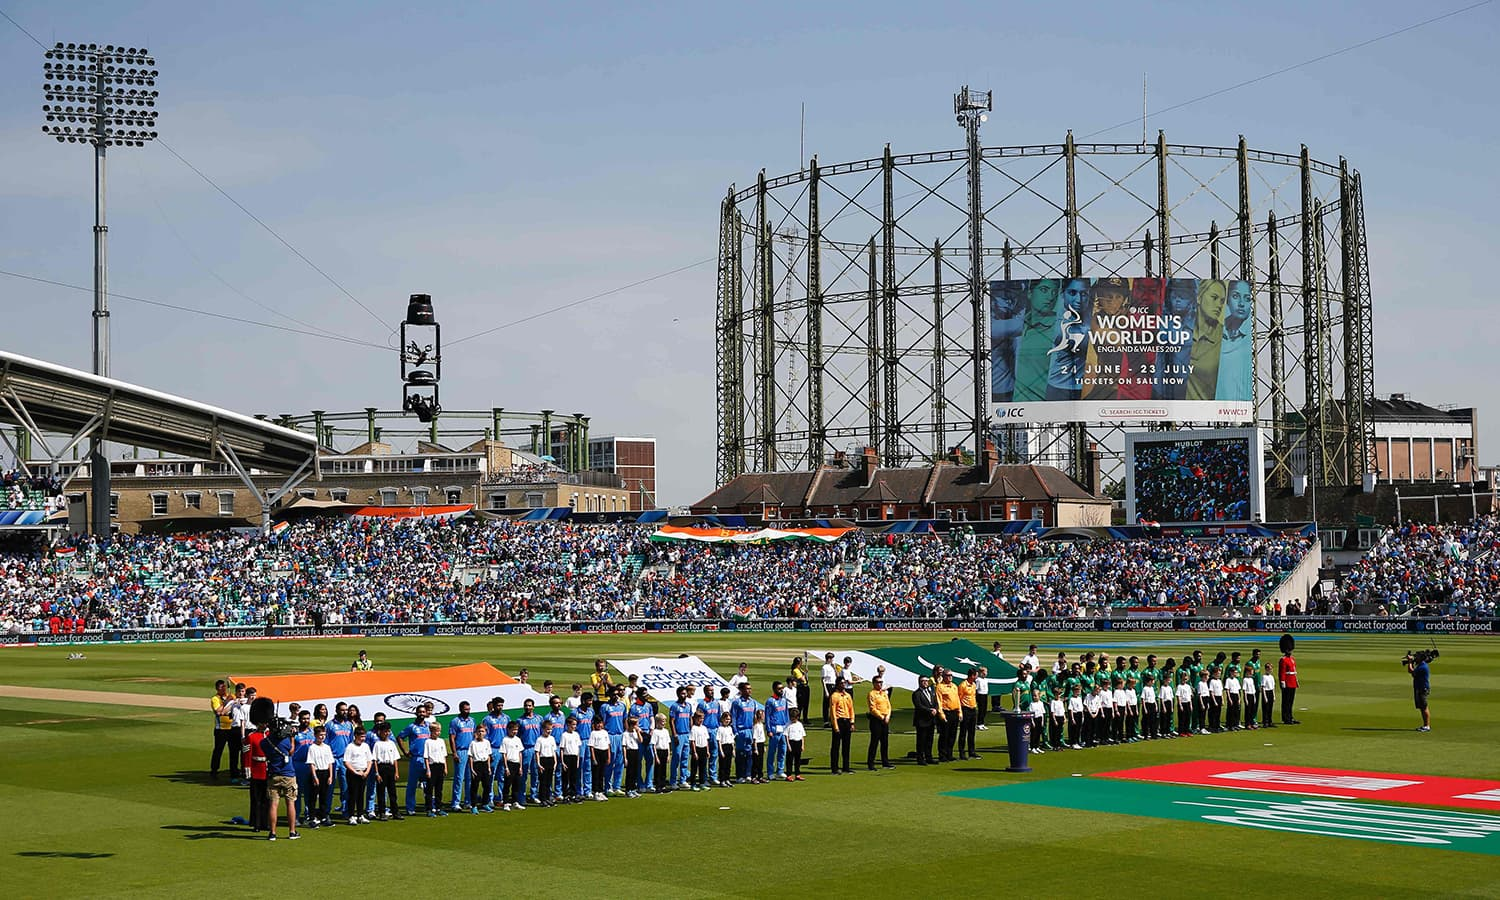 The teams line up on the pitch for the national anthems at the start of the ICC Champions Trophy final cricket match between India and Pakistan at The Oval in London.─AFP